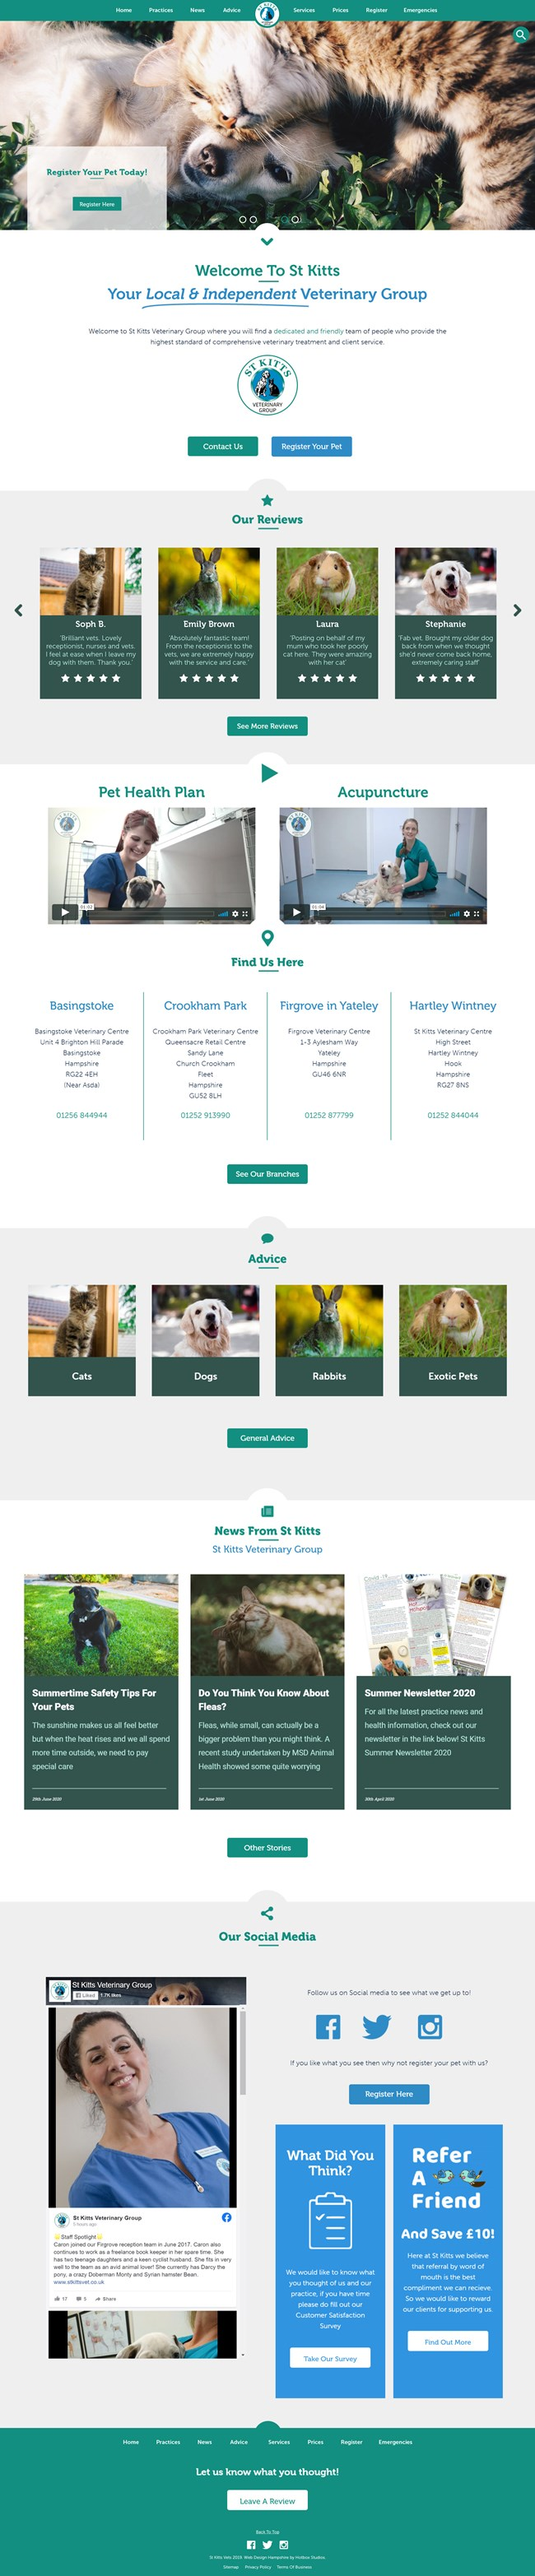 St Kitts Vet Website Design and WordPress Web Development SP001 Homepage